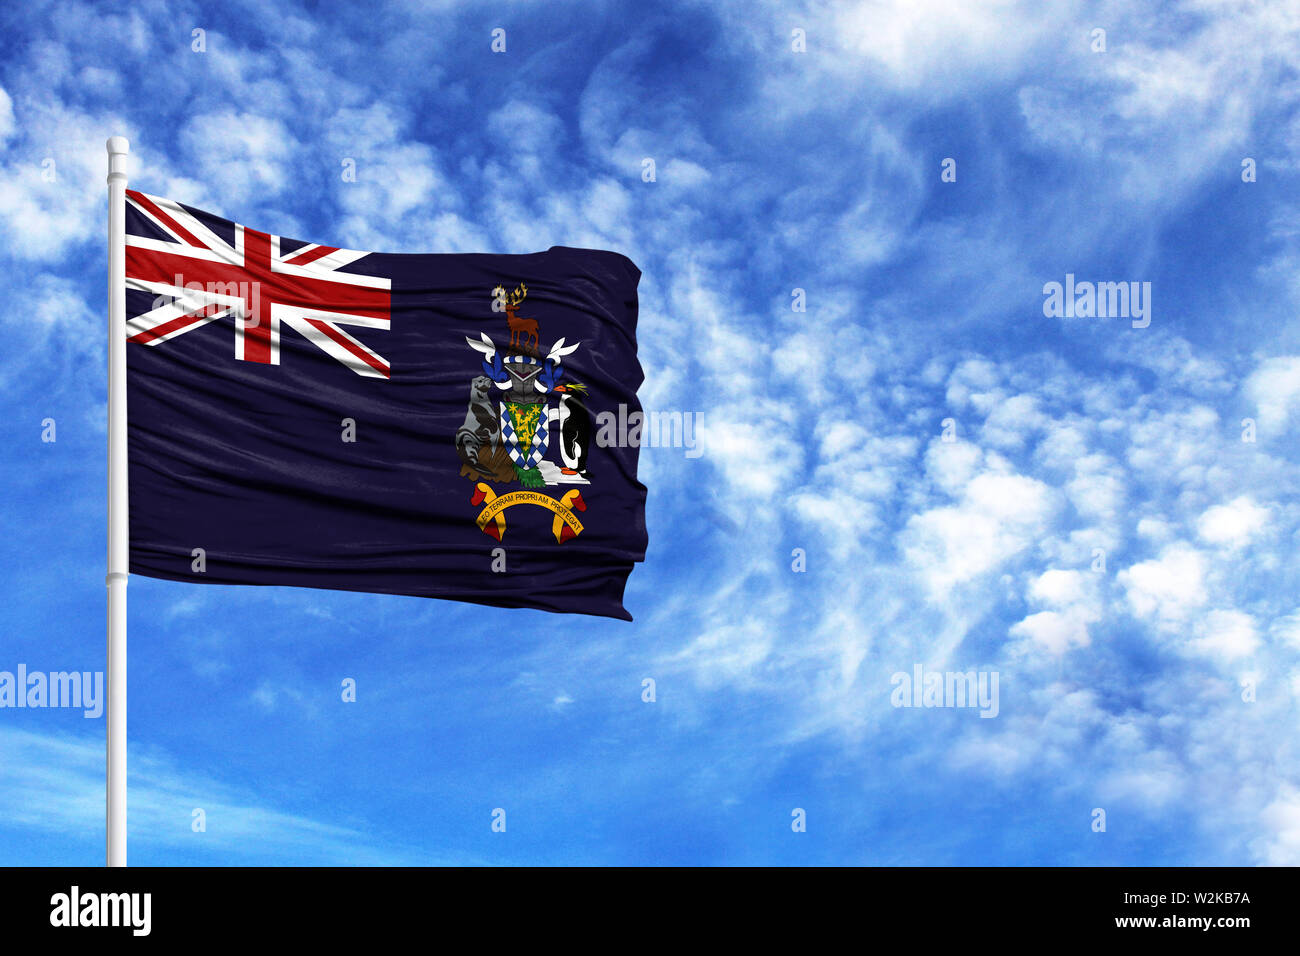 National flag of South Georgia and the South Sandwich Islands on a flagpole in front of blue sky - Stock Image